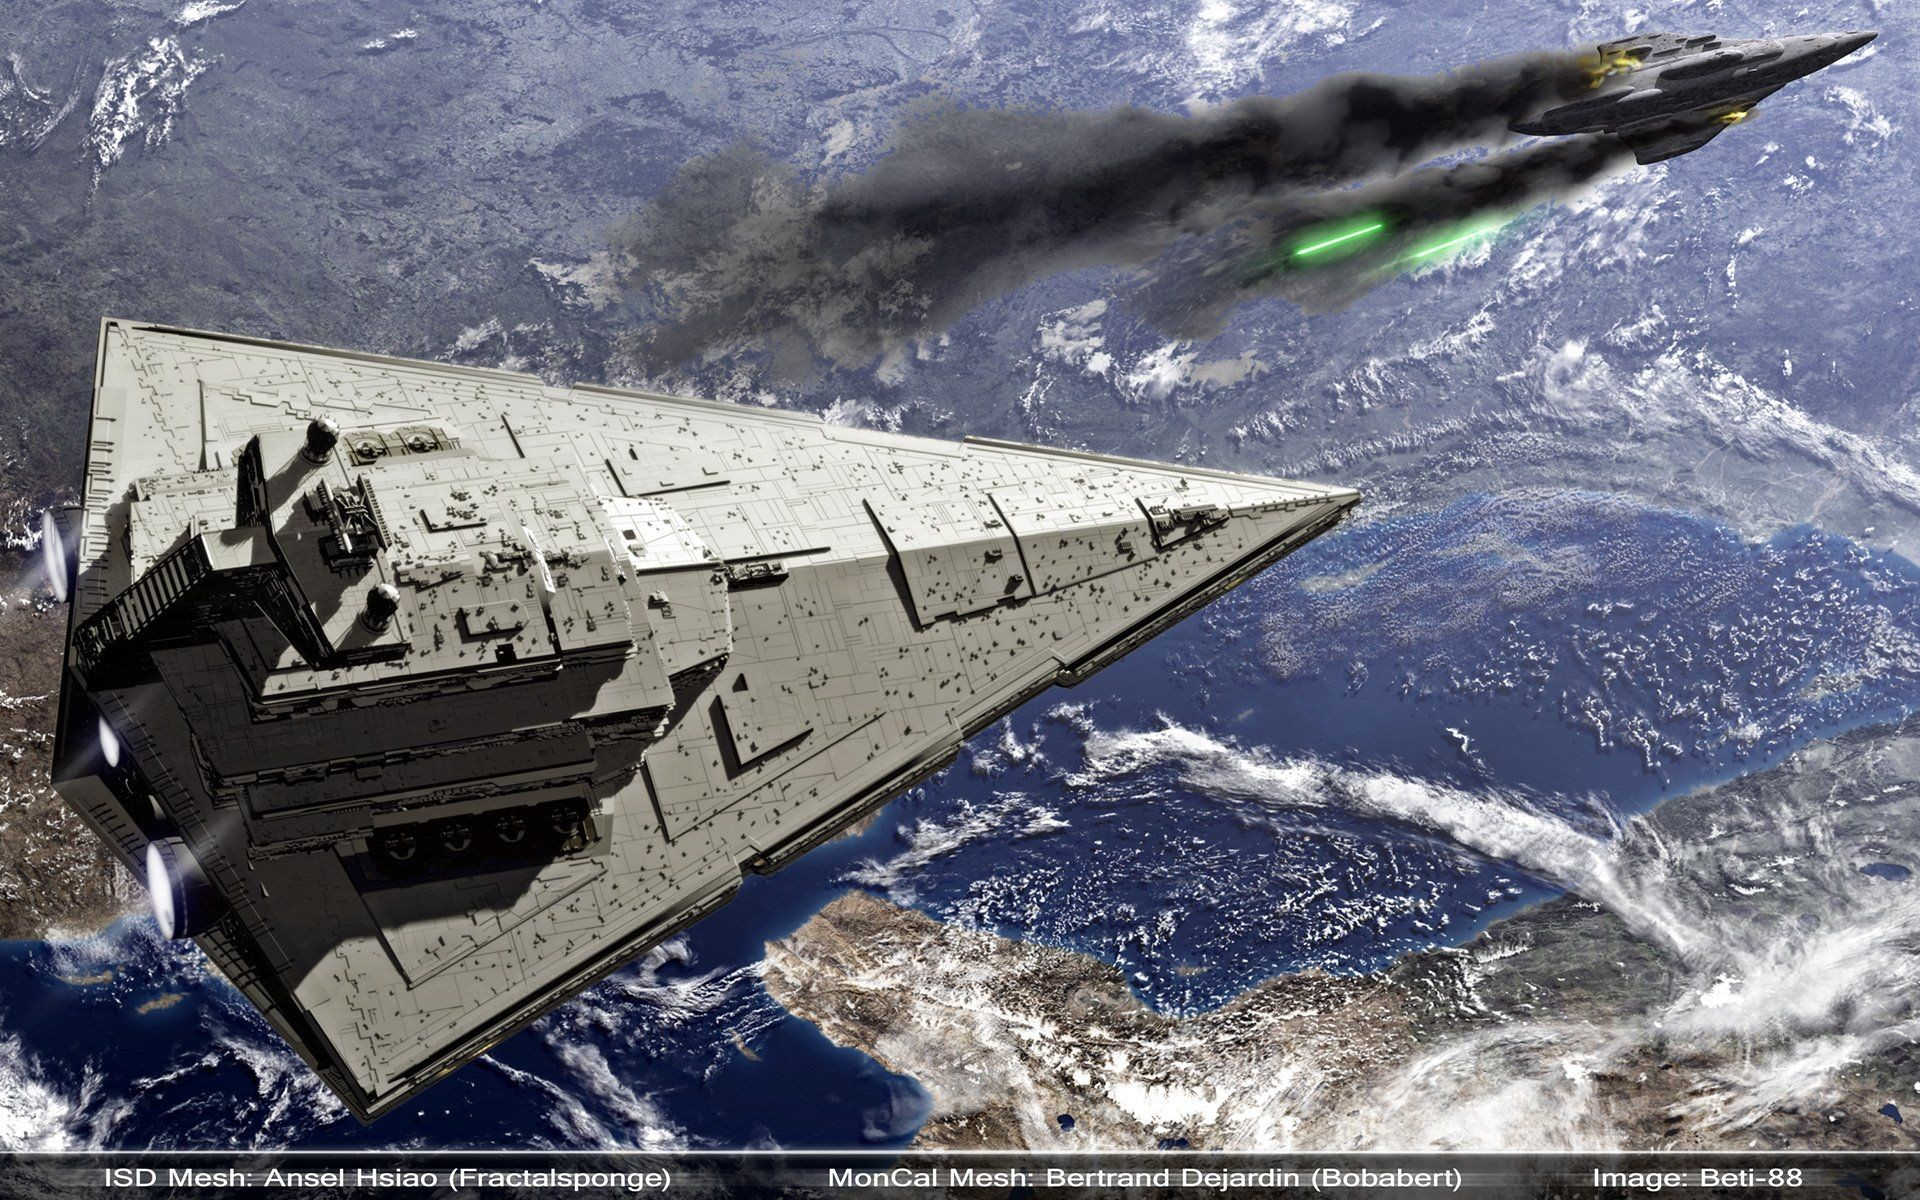 1920x1200 Star Wars Imperial Star Destroyer Wallpaper images